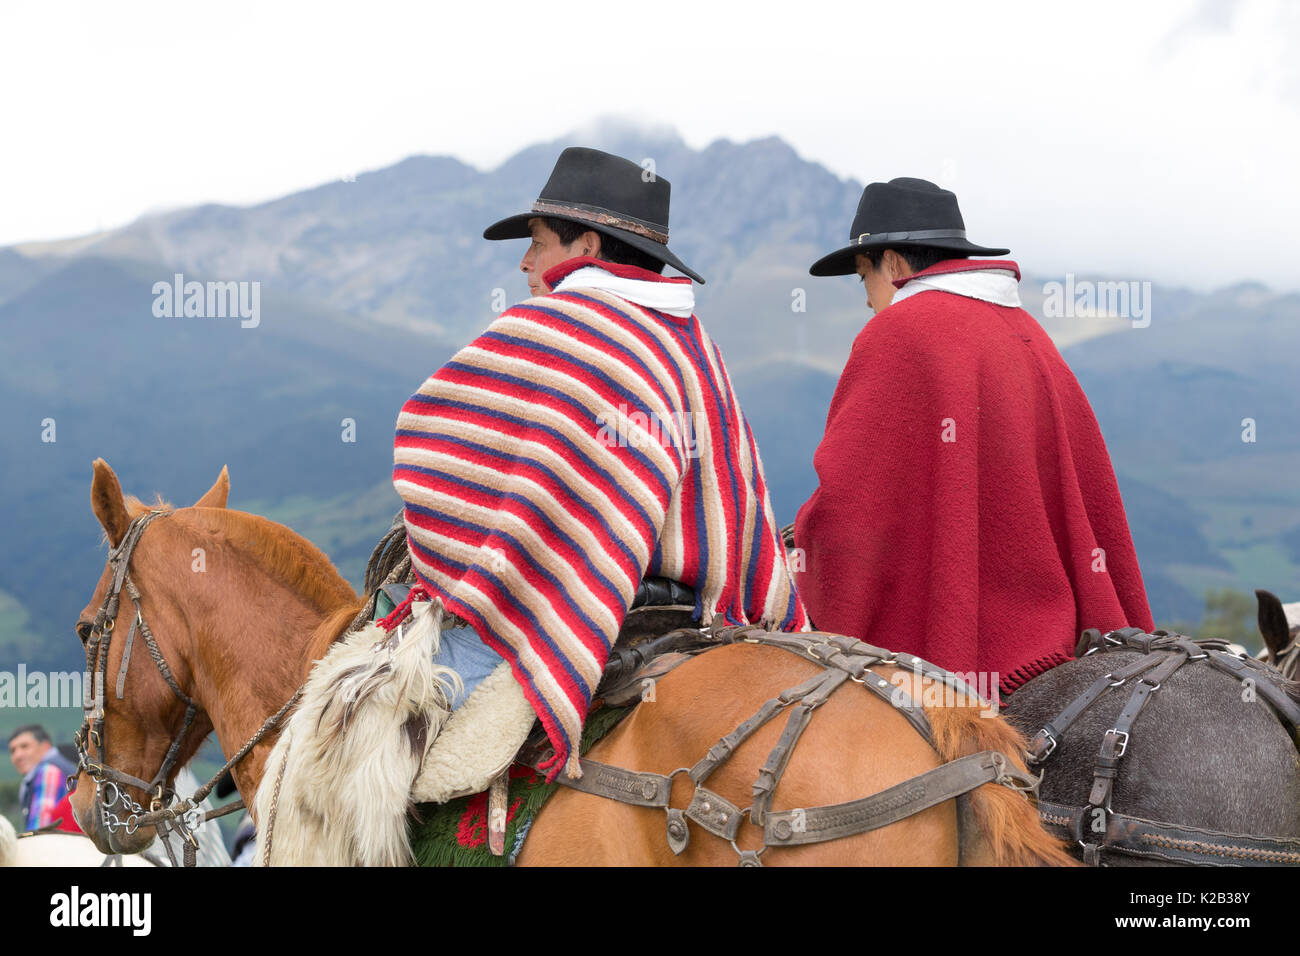 June 3, 2017 Machachi, Ecuador: closeup of indigenous quechua cowboys on horseback  dressed traditionally in colorful poncho with mountains in the bac - Stock Image